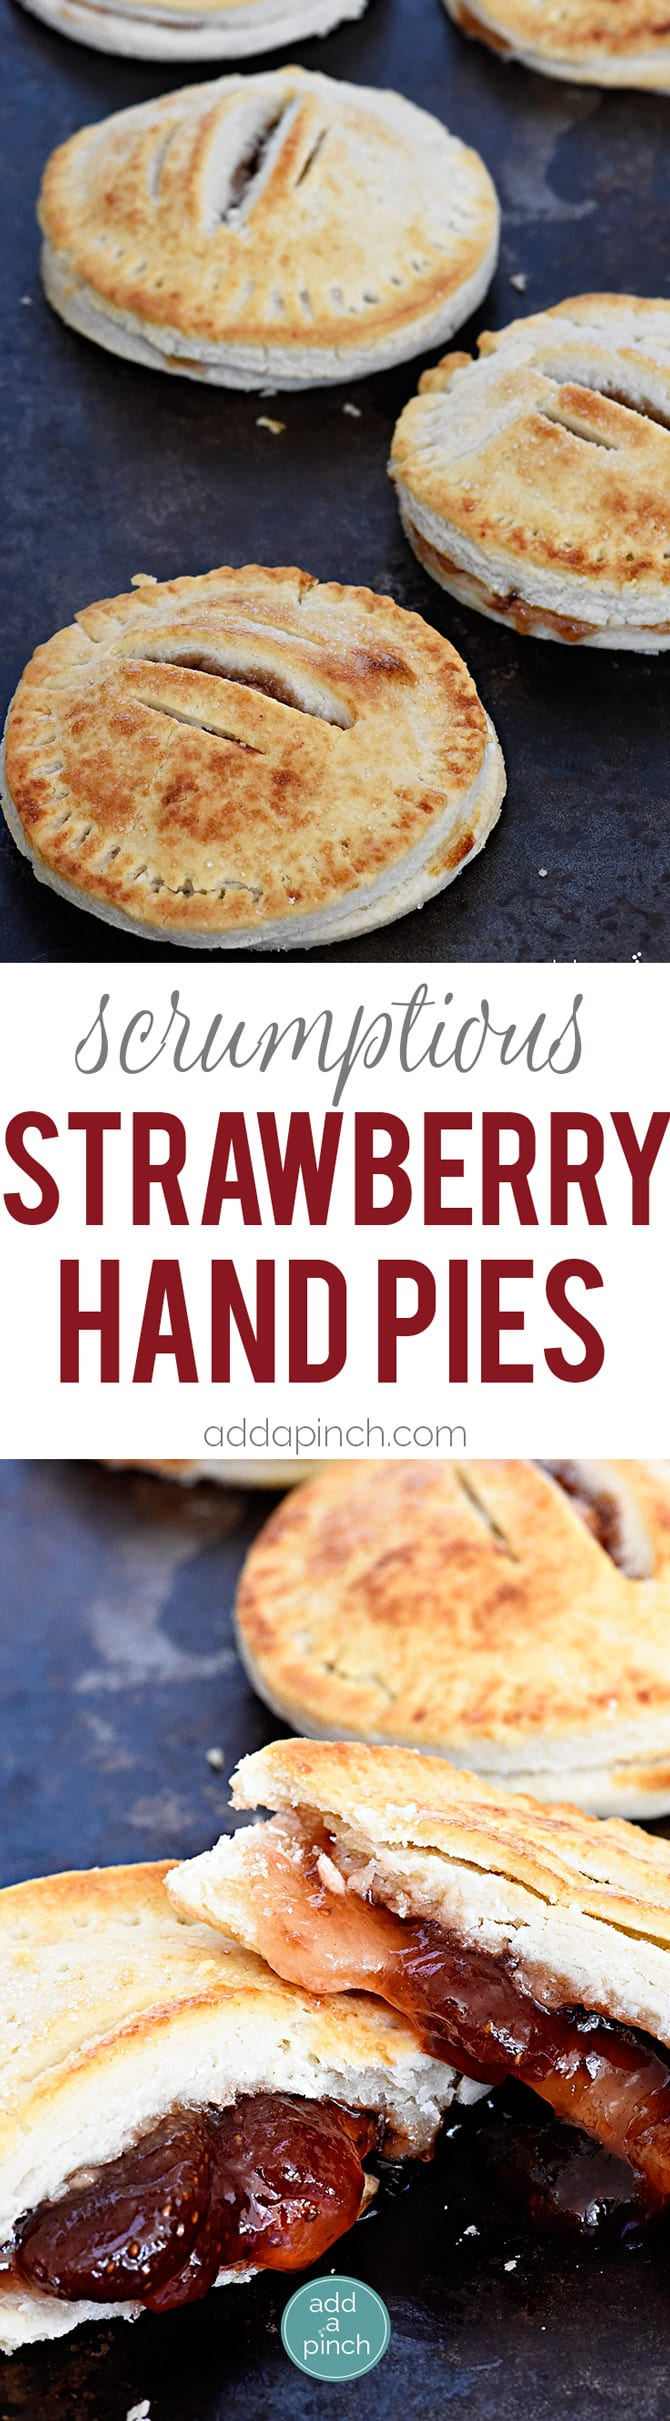 strawberry hand pies are the cutest and simplest little portable pies ...